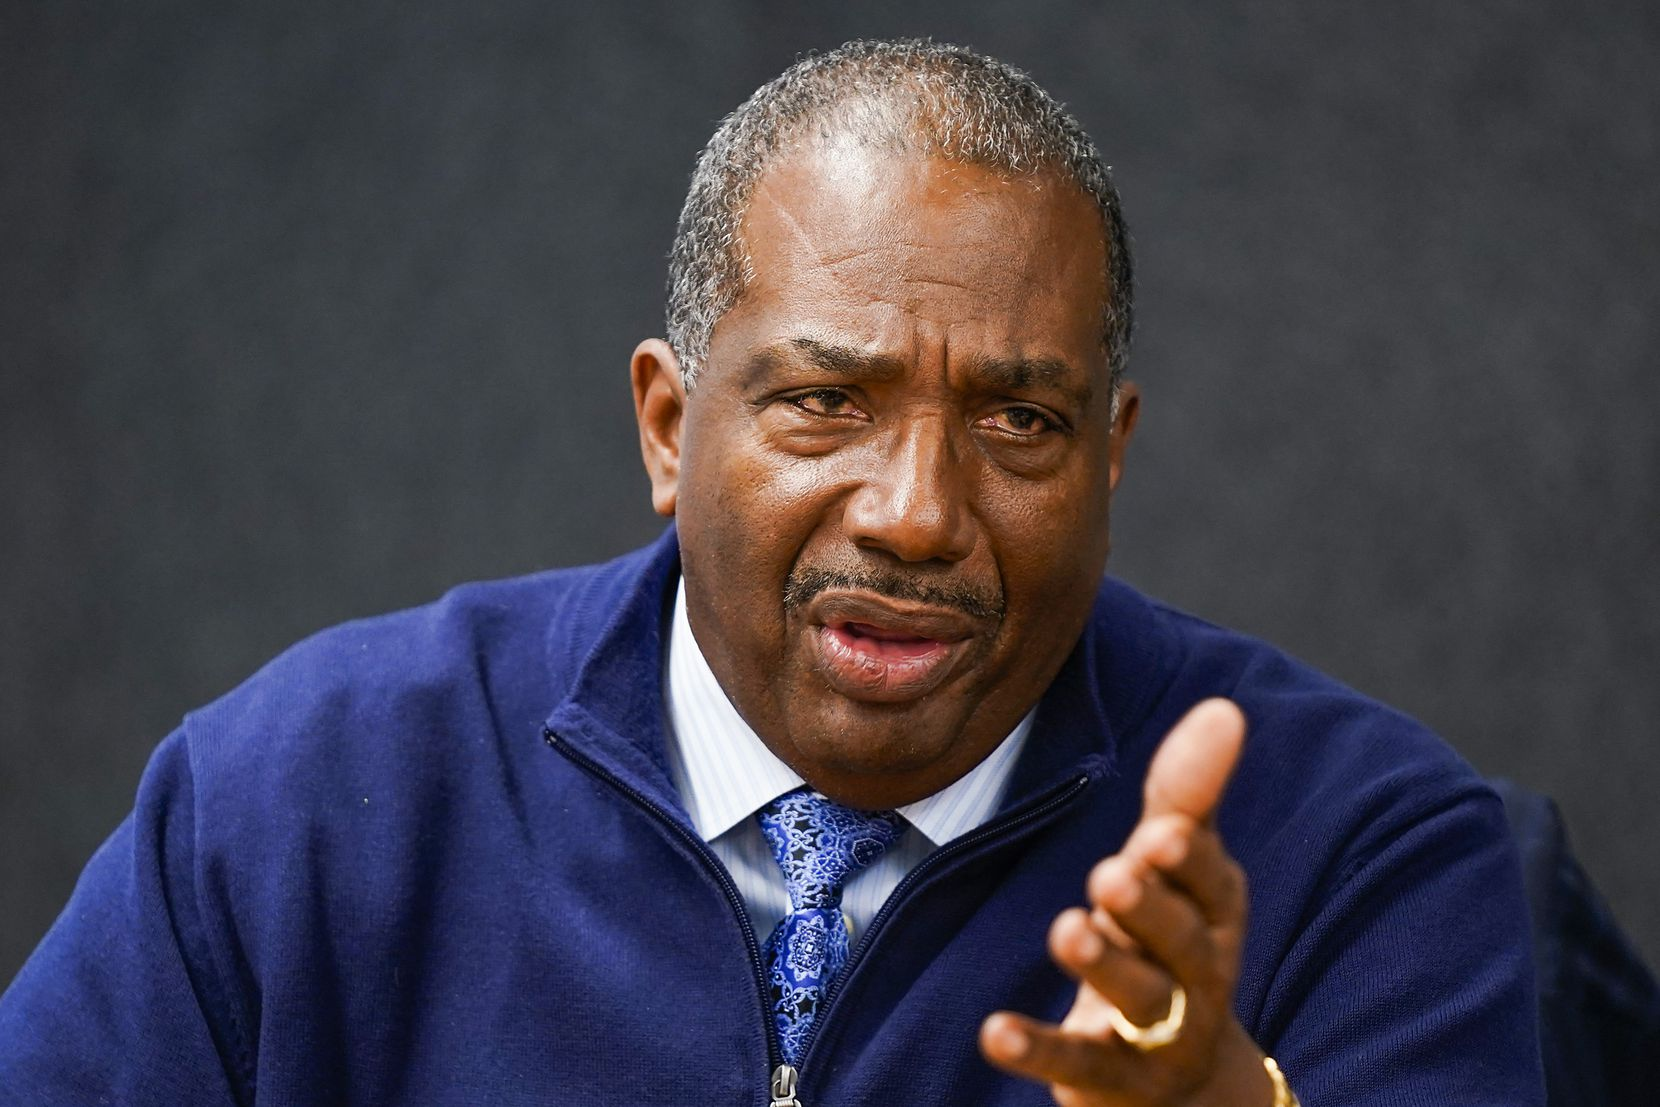 State Sen. Royce West, D-Dallas, expects to do well with black and Hispanic residents across the state, and has endorsements from most Democrats in the Texas Legislature.